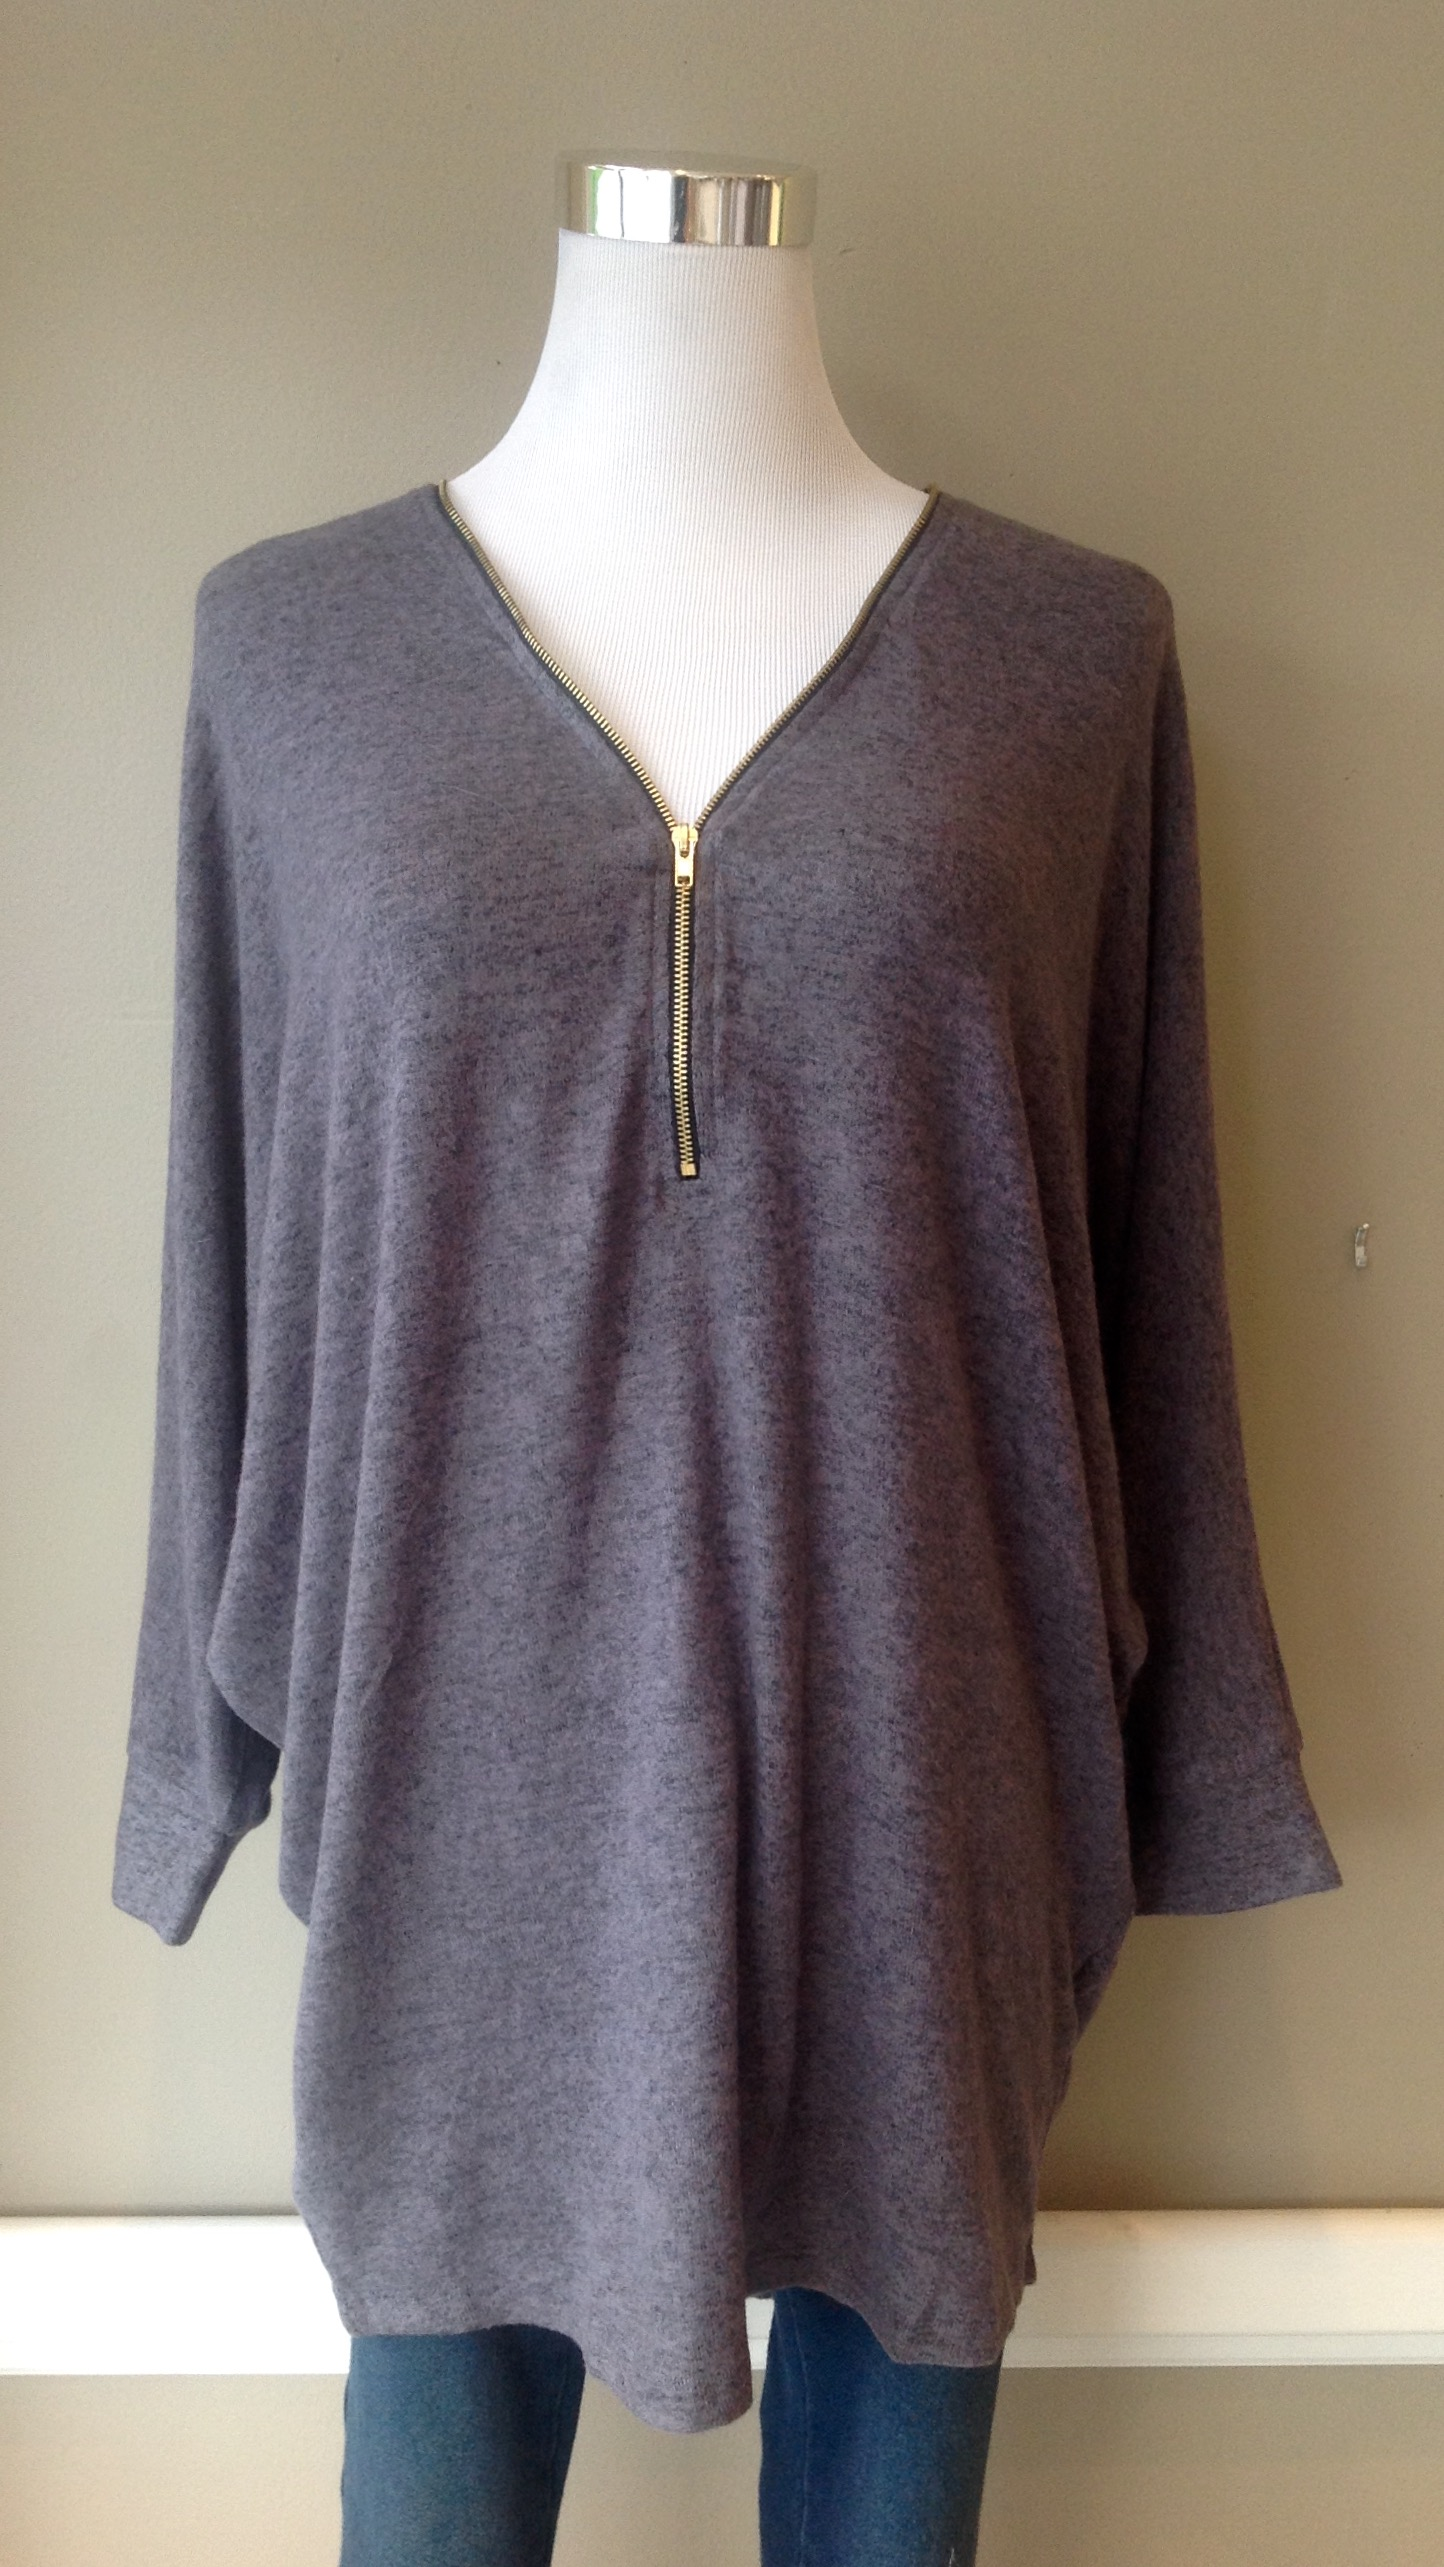 Zip front, fleecy knit sweater with batwing sleeves, $35. Also available in heather grey.